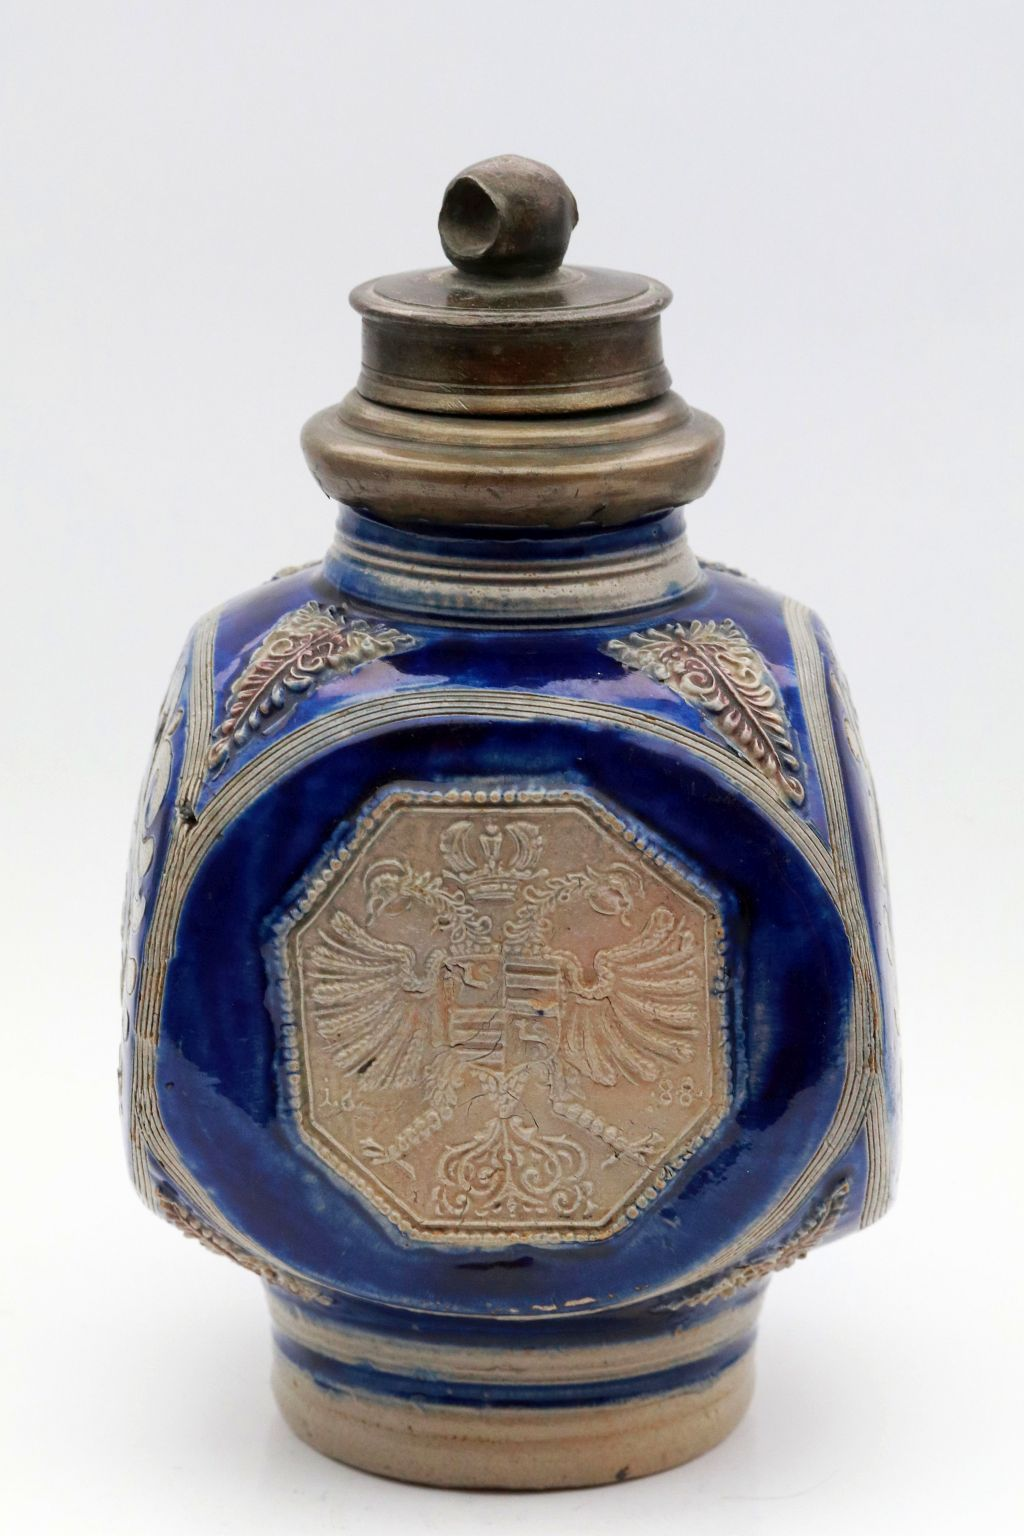 17th century Westerwald saltglazed stoneware flask dated 1688 code of arms